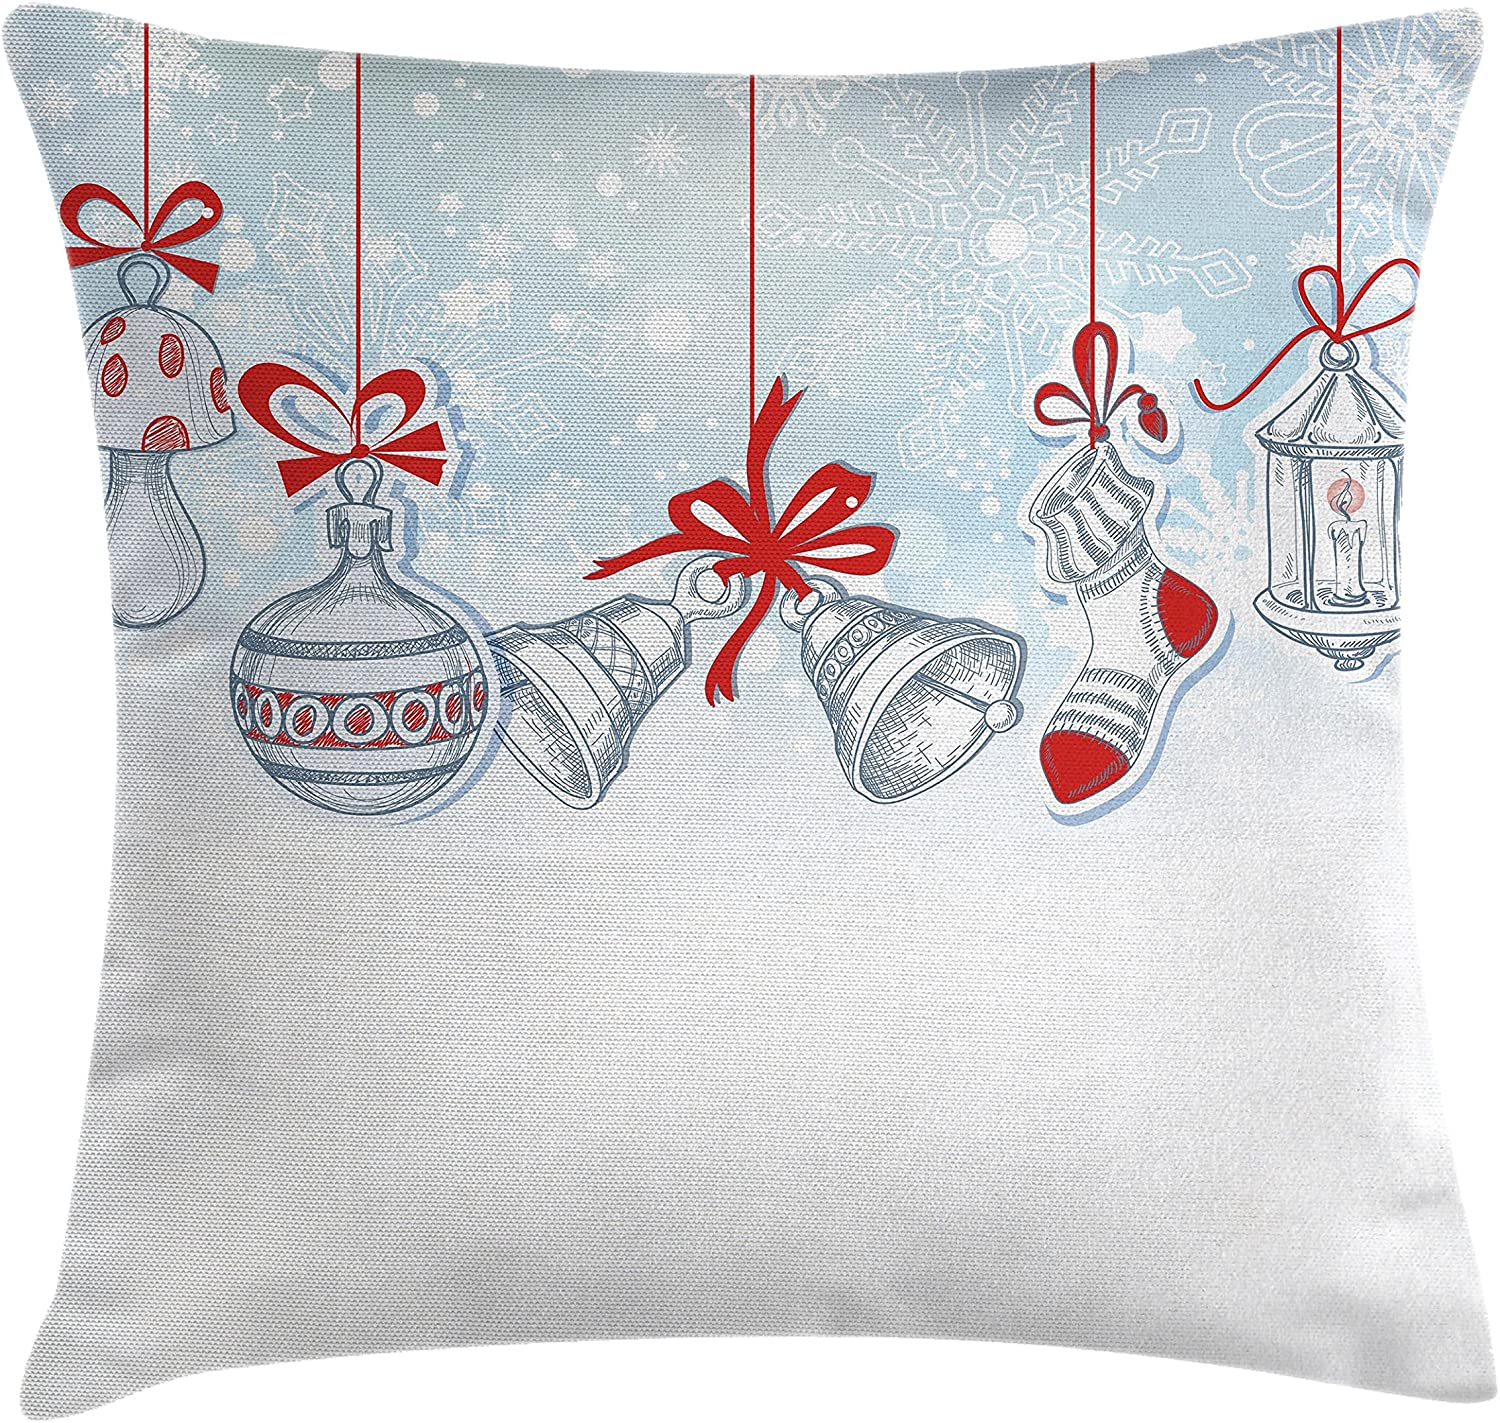 Ambesonne Christmas Throw Pillow Cushion Cover, Retro Style Famous Socks for Toy and Candy Bells and Snowflake Graphic, Decorative Square Accent Pillow Case, 20